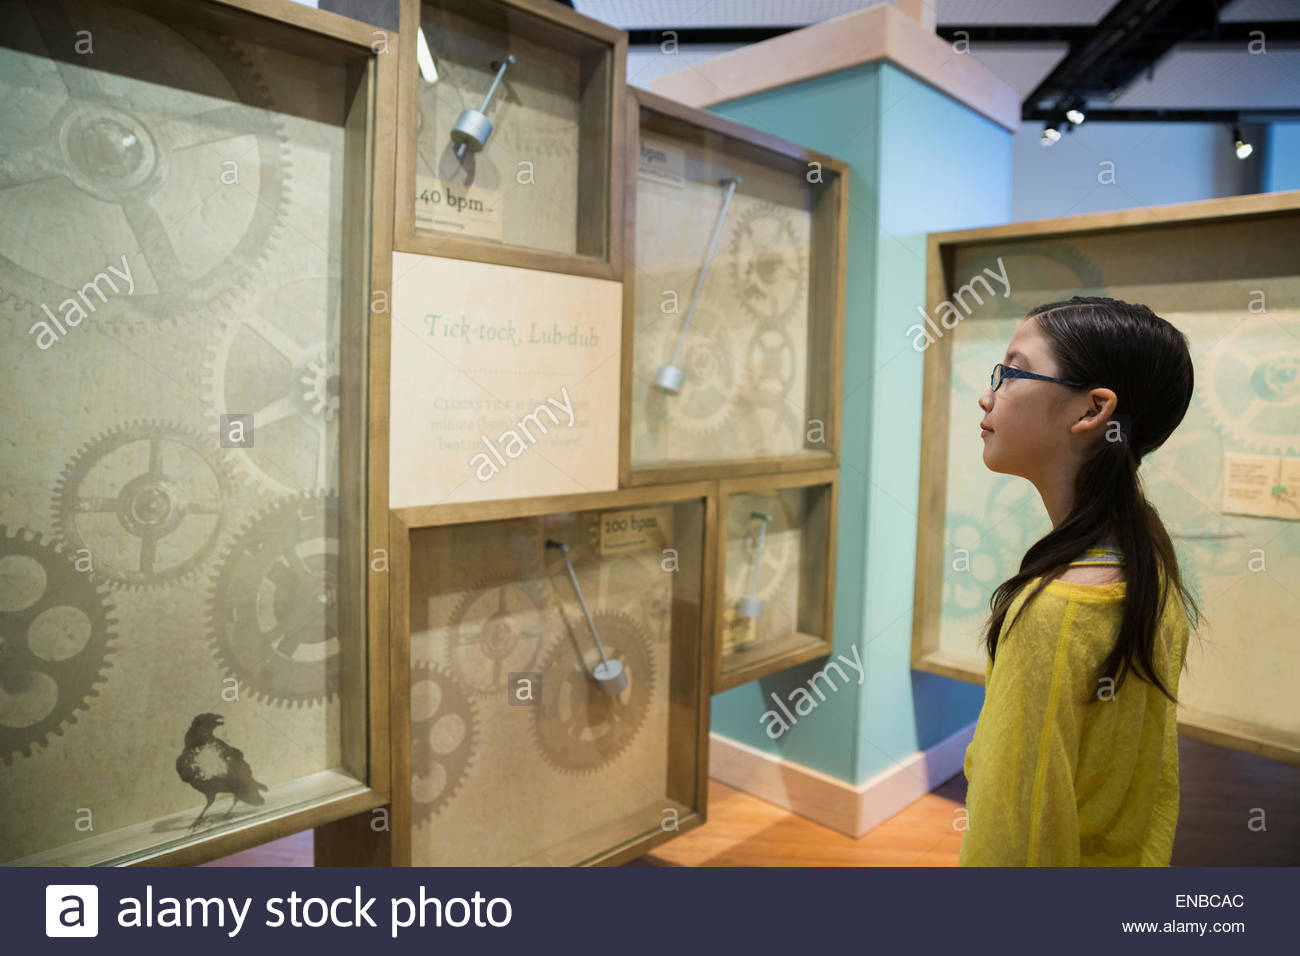 Curious girl viewing clock exhibit at science center - Stock Image